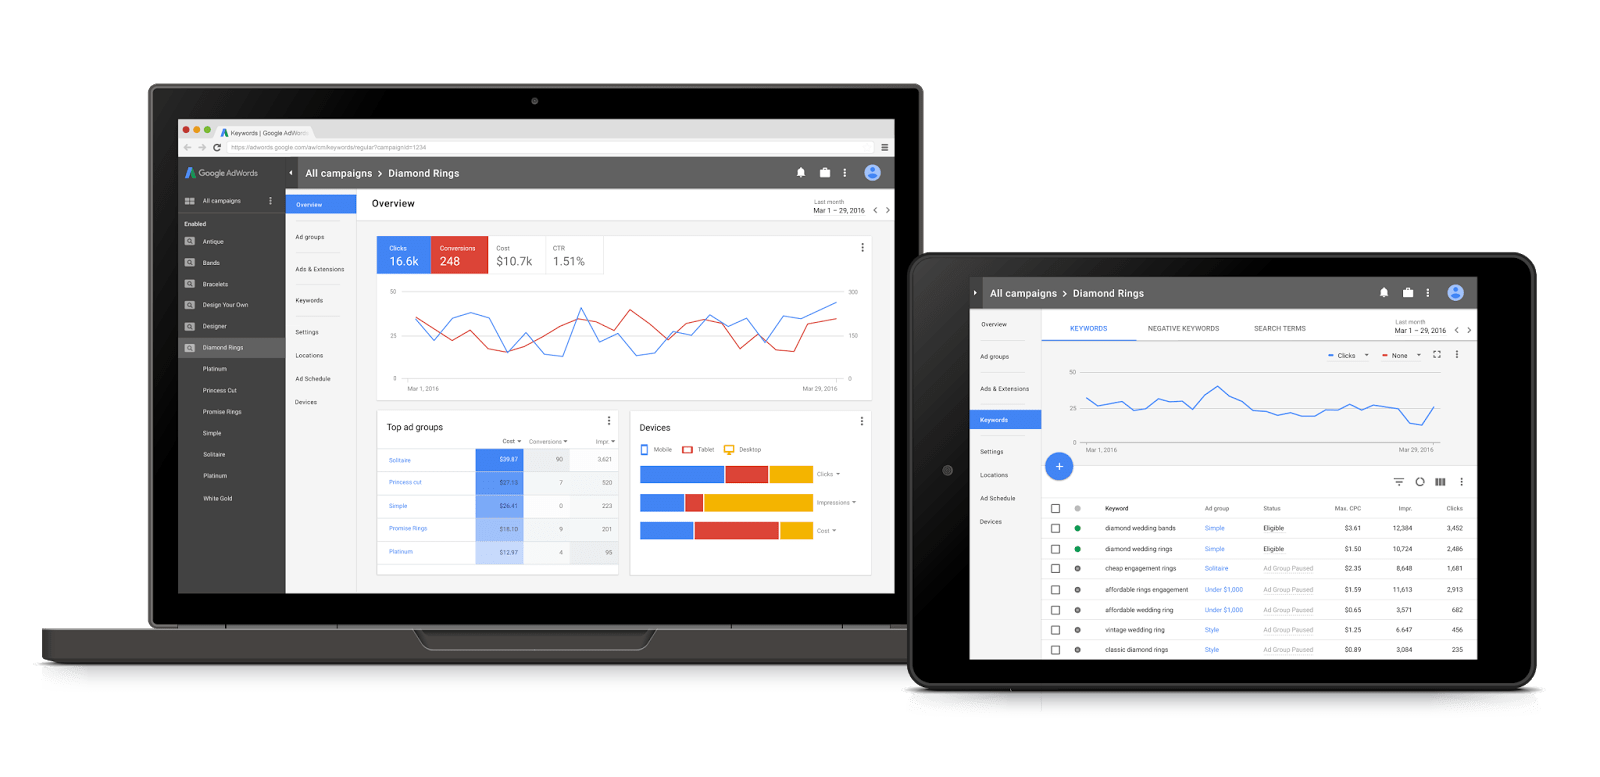 AdWords interface